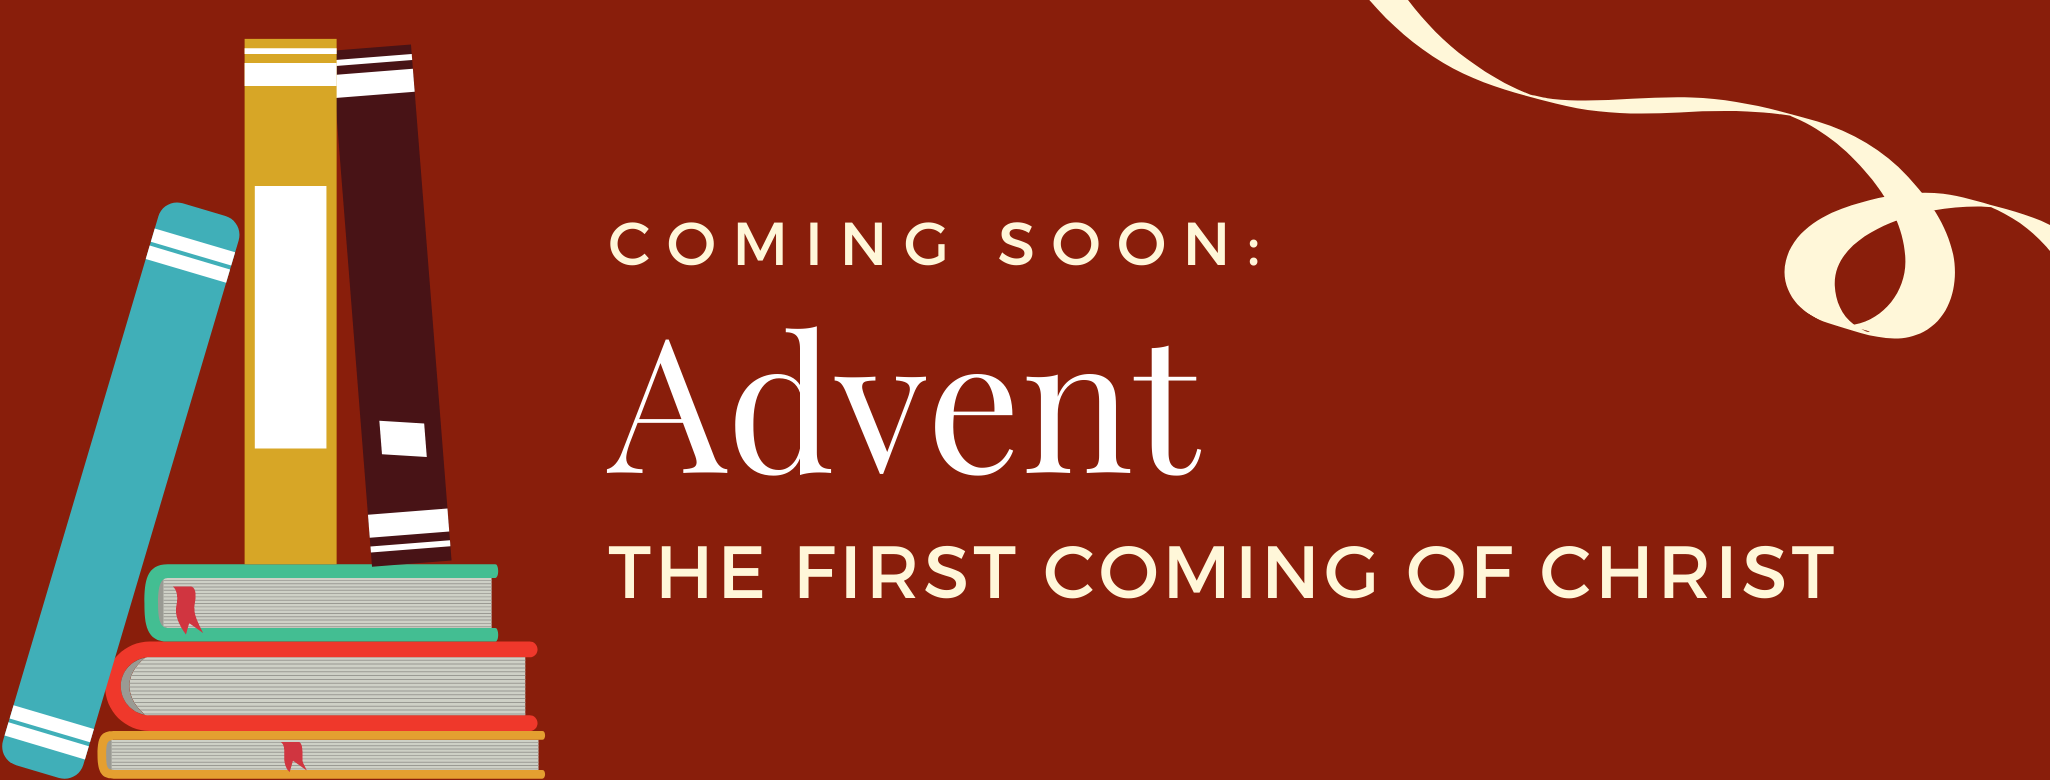 advent-coming-soon